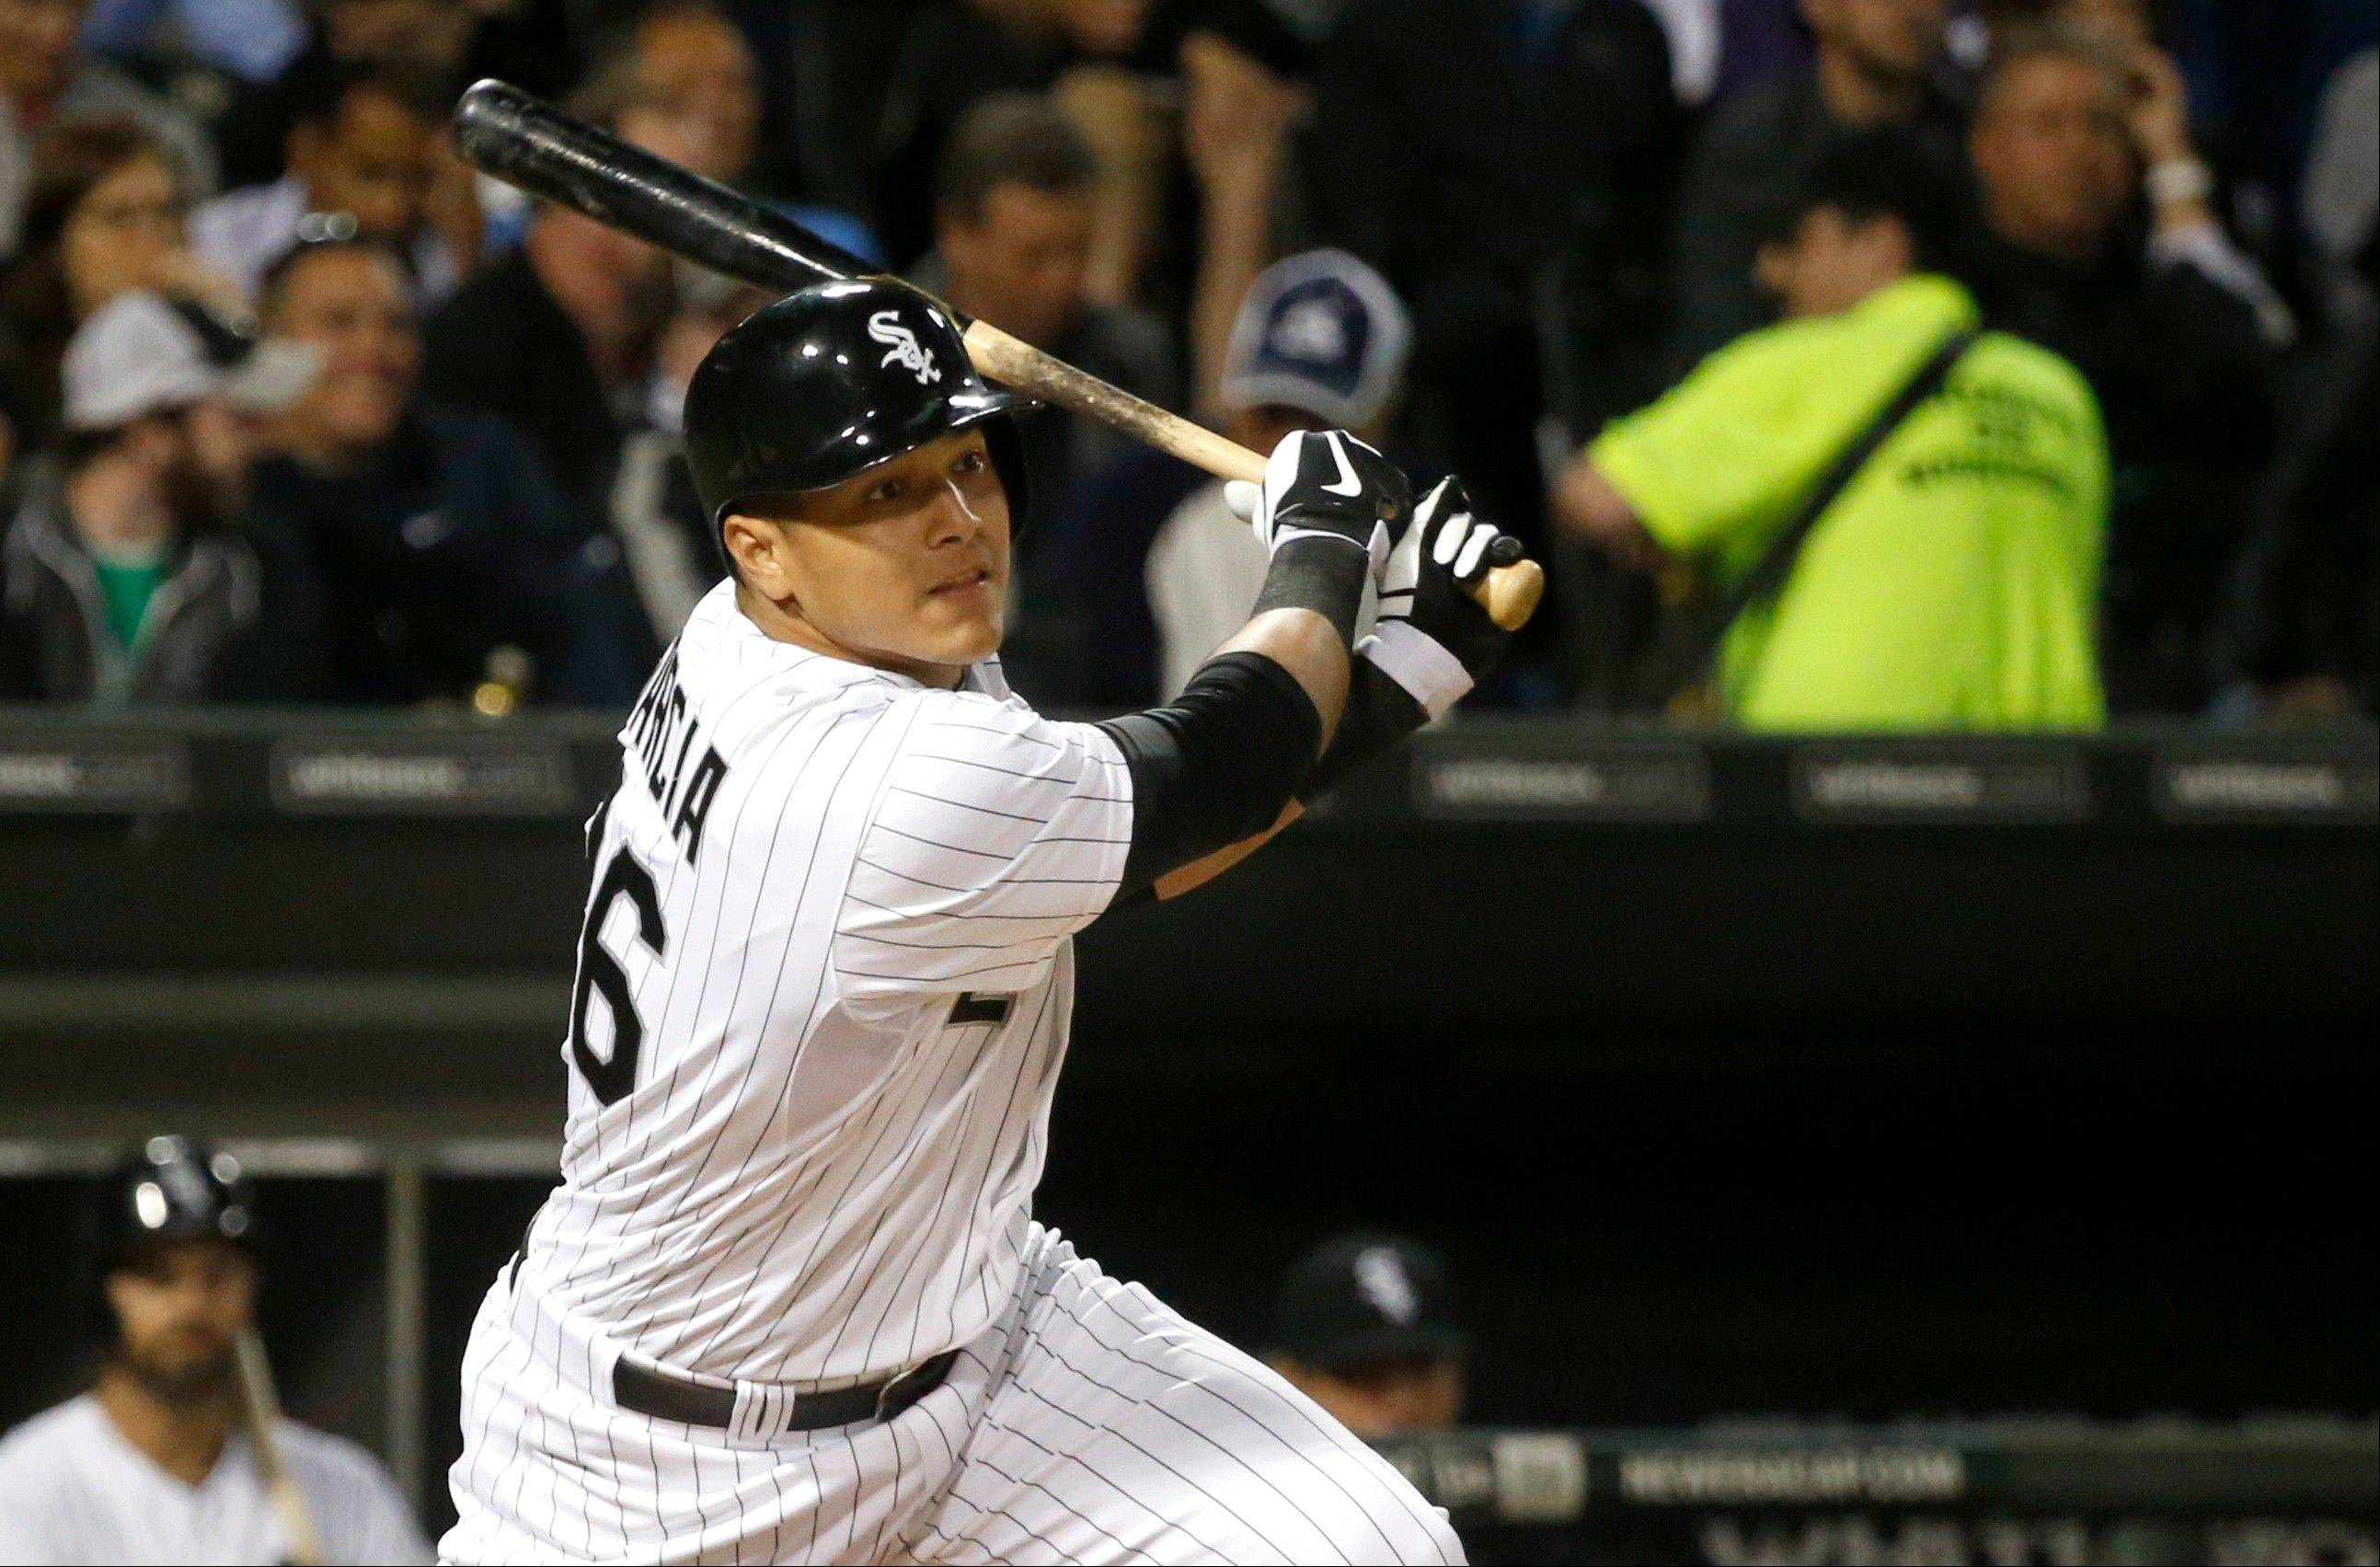 Avisail Garcia, recently acquired from the Tigers in the three-team Jake Peavy trade, is off to a promising start for the White Sox.